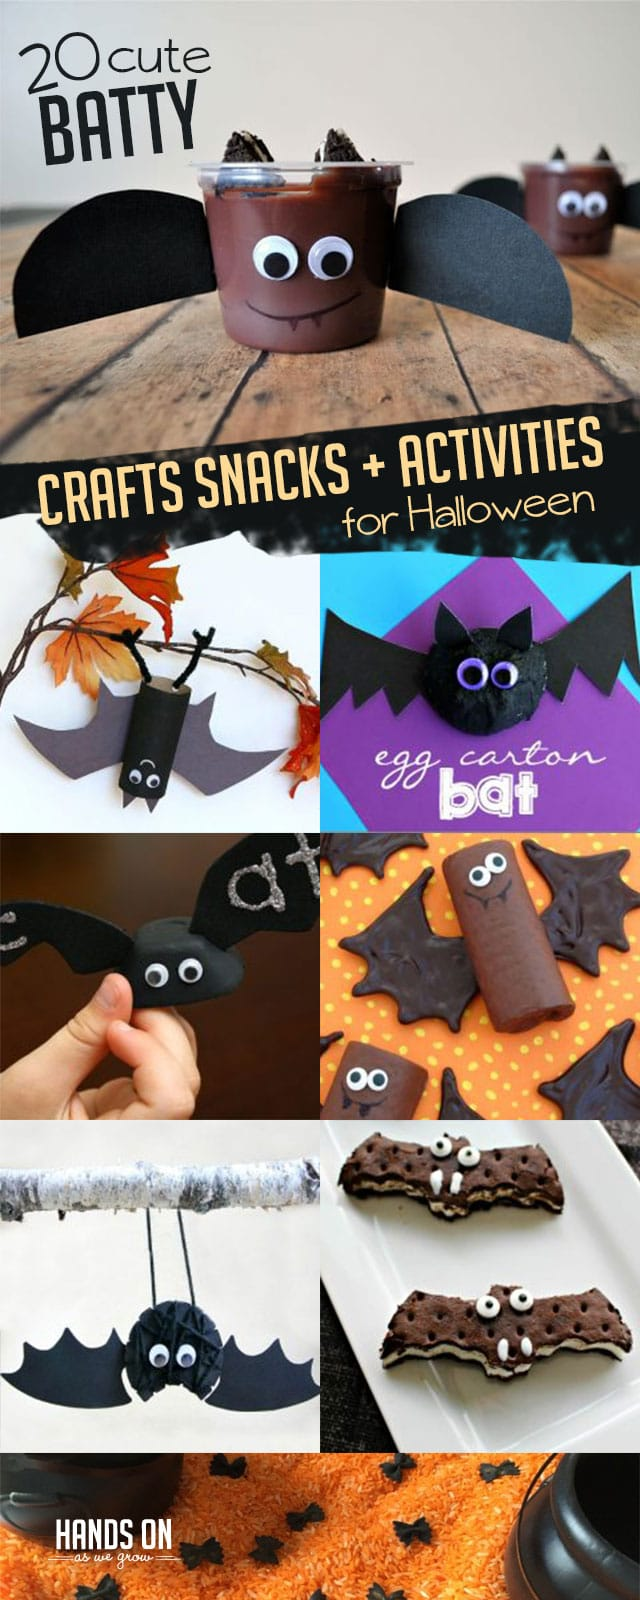 Get in the Halloween spirit with 20 cute batty crafts, snacks, and activities perfect for kids to make and do!